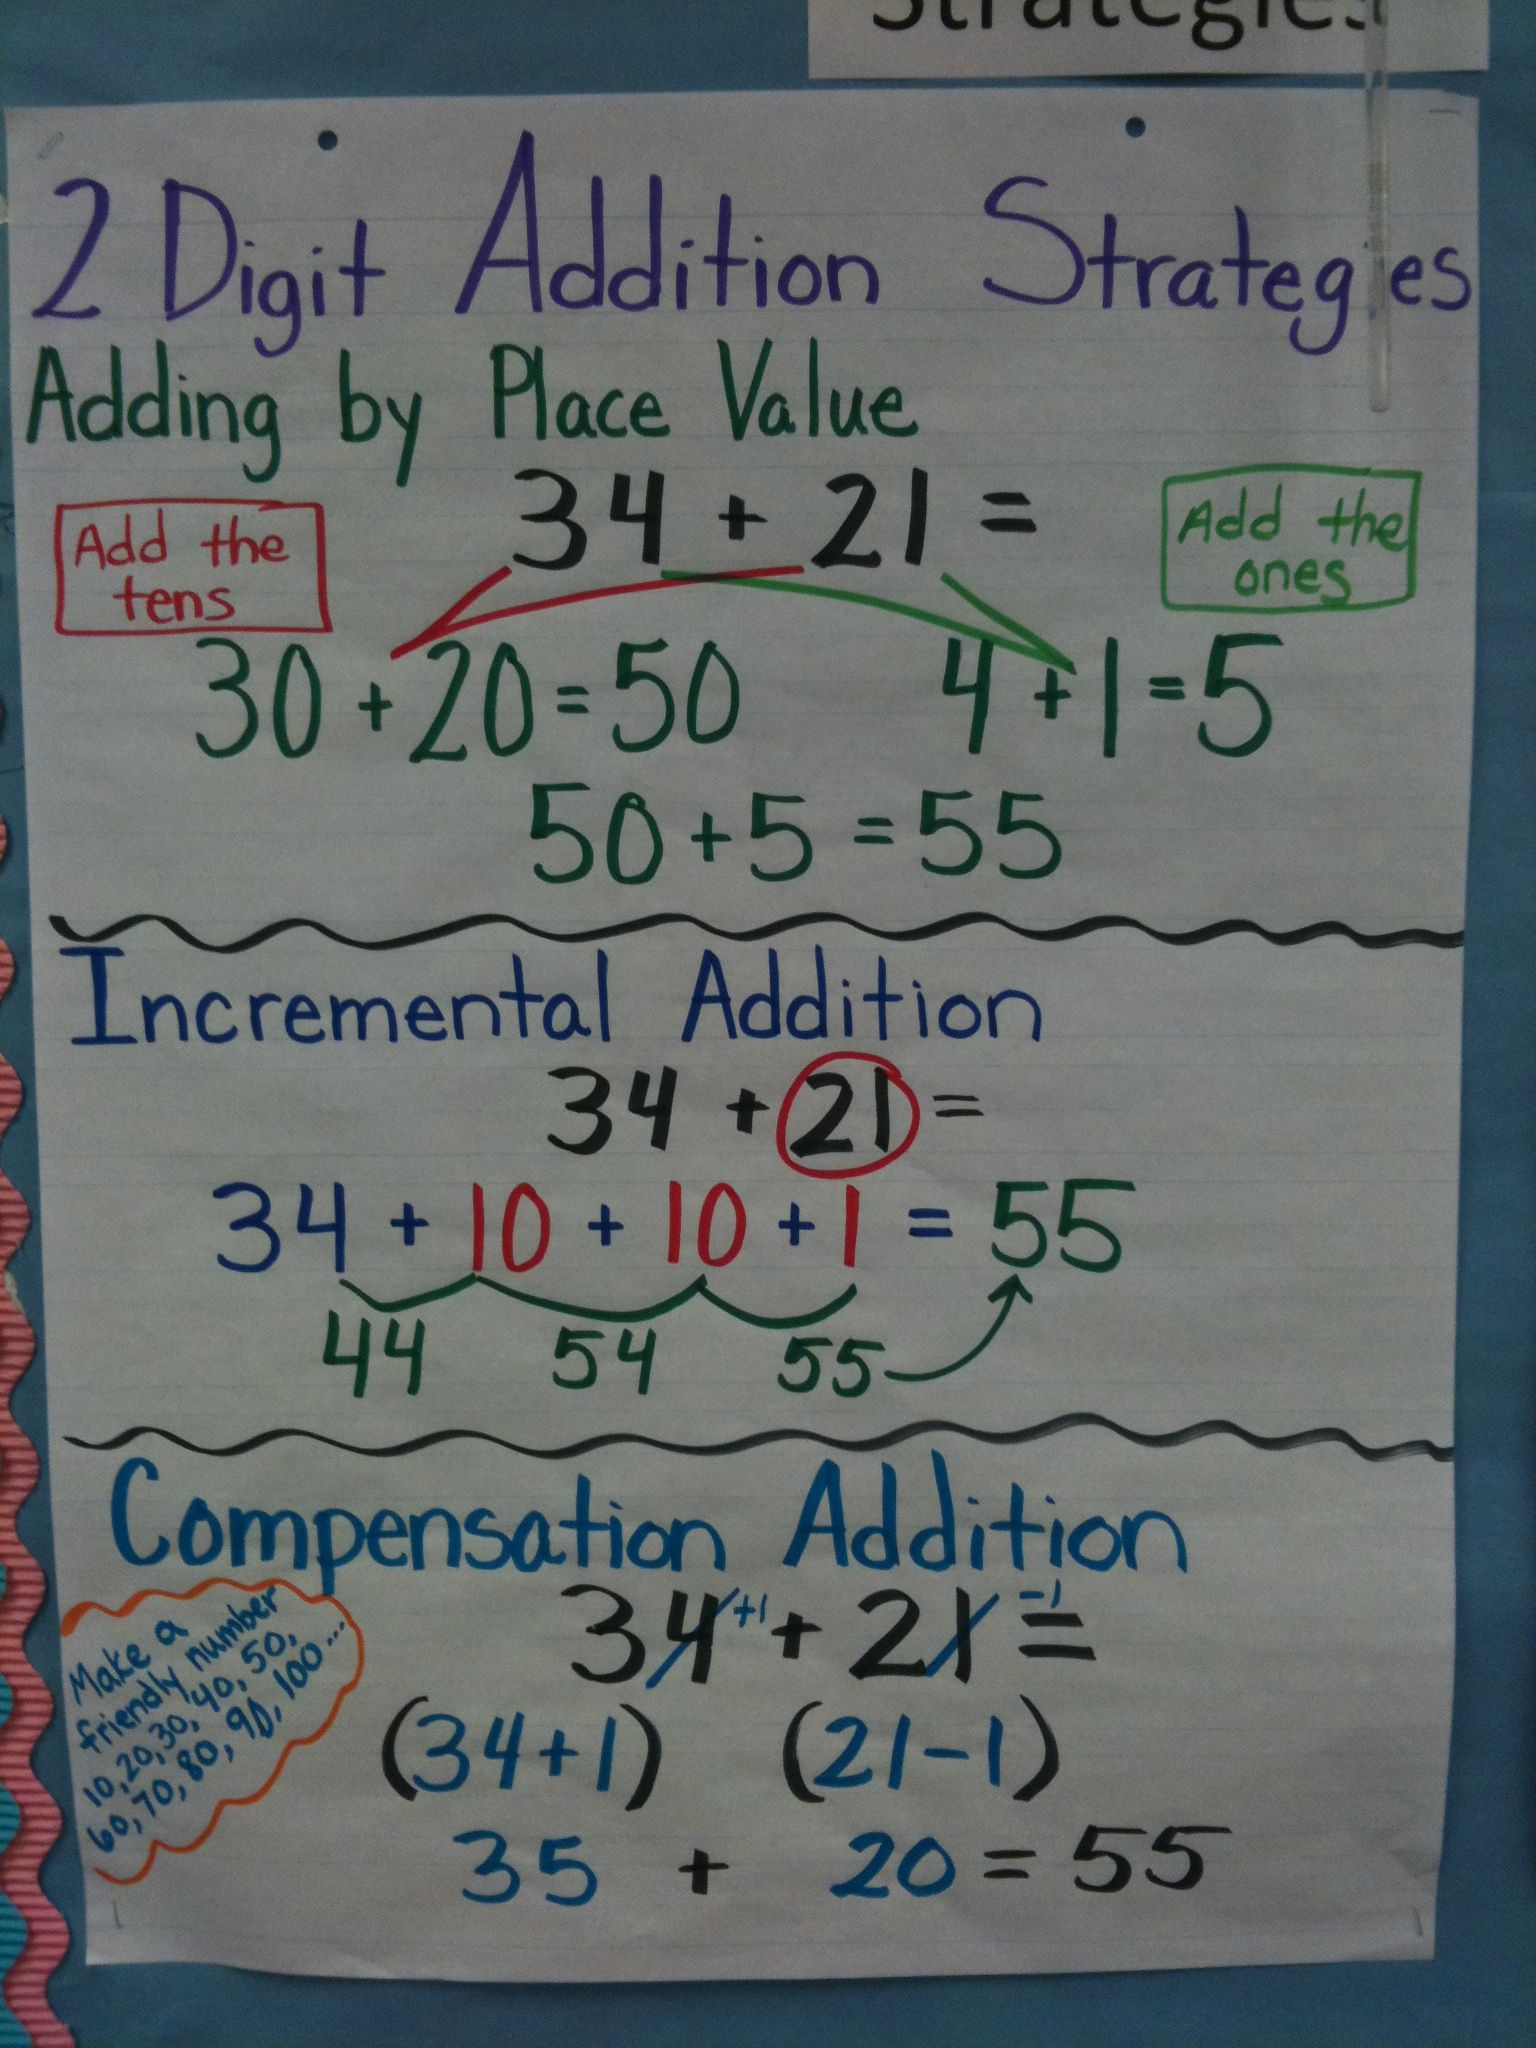 Two Digit Addition Strategies I Like The Adding By Place